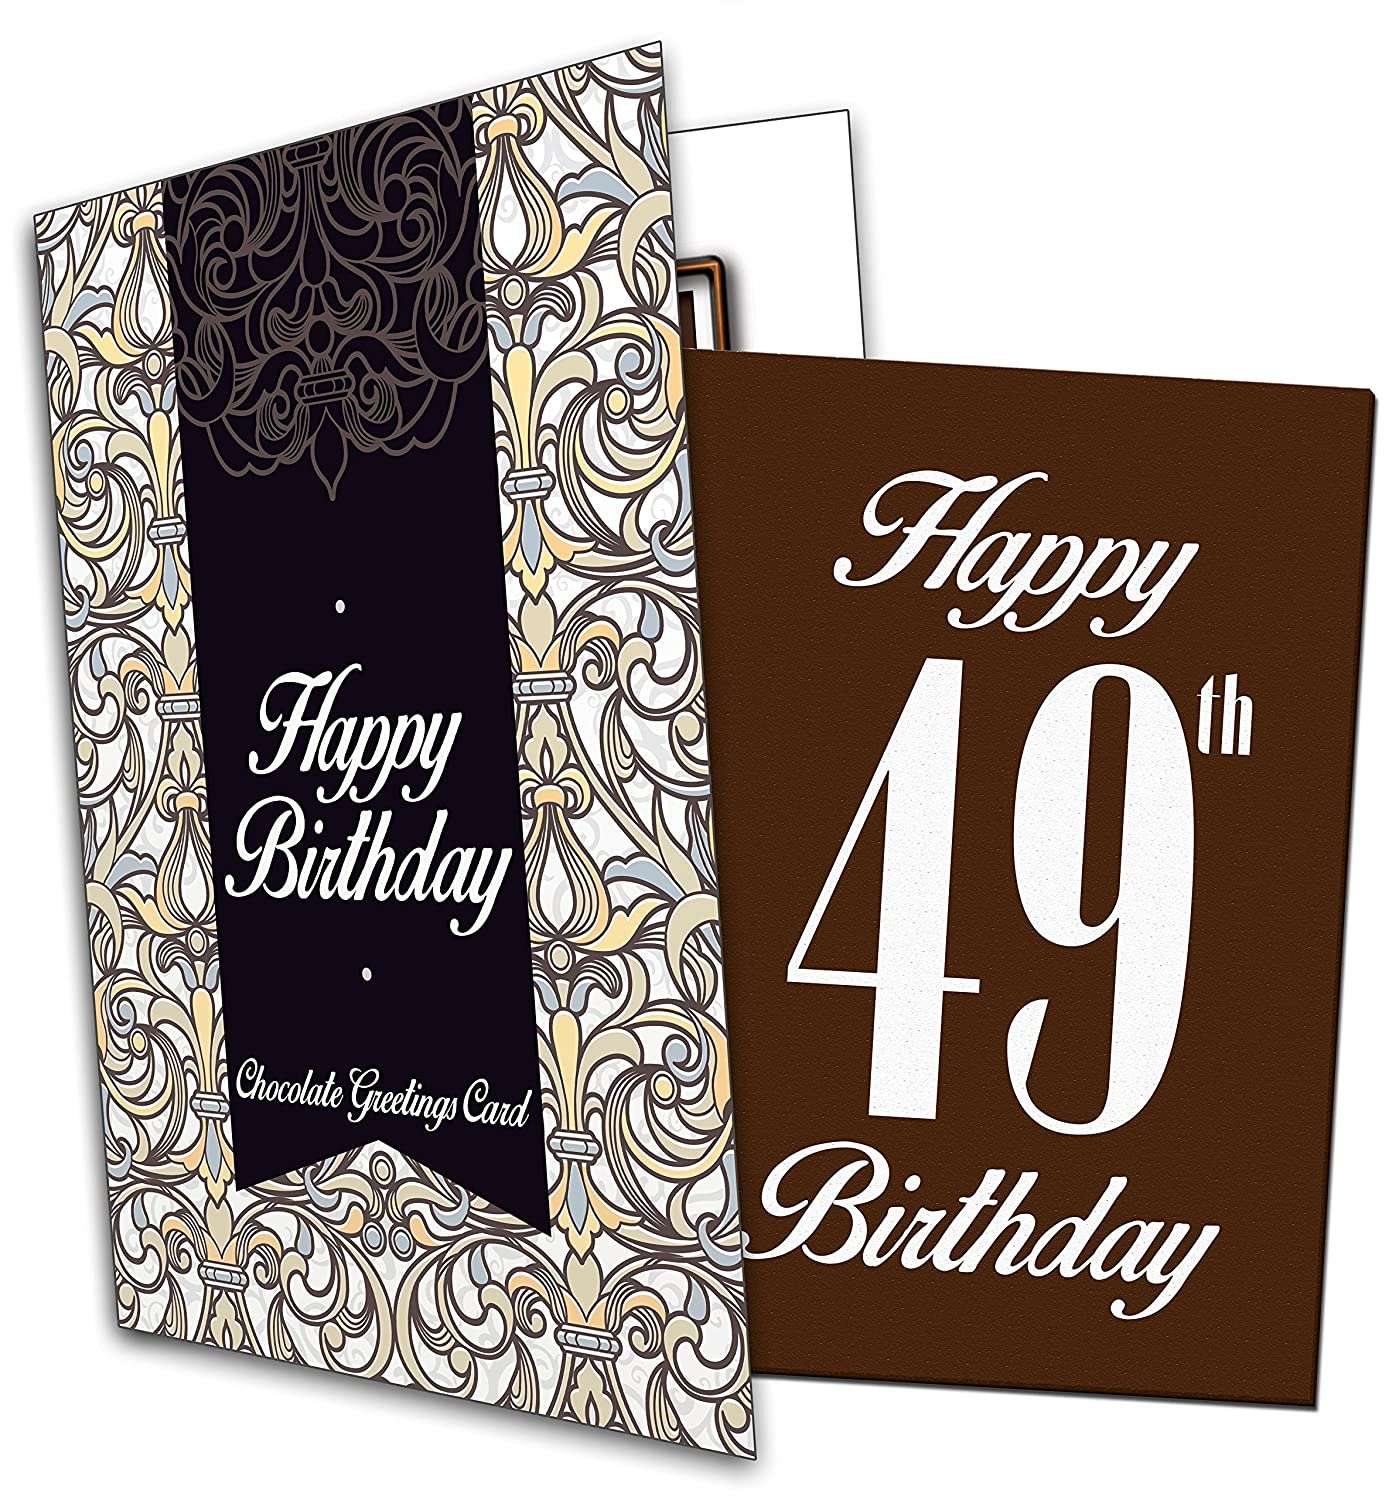 Happy 49th Birthday Cards Son Topsimages